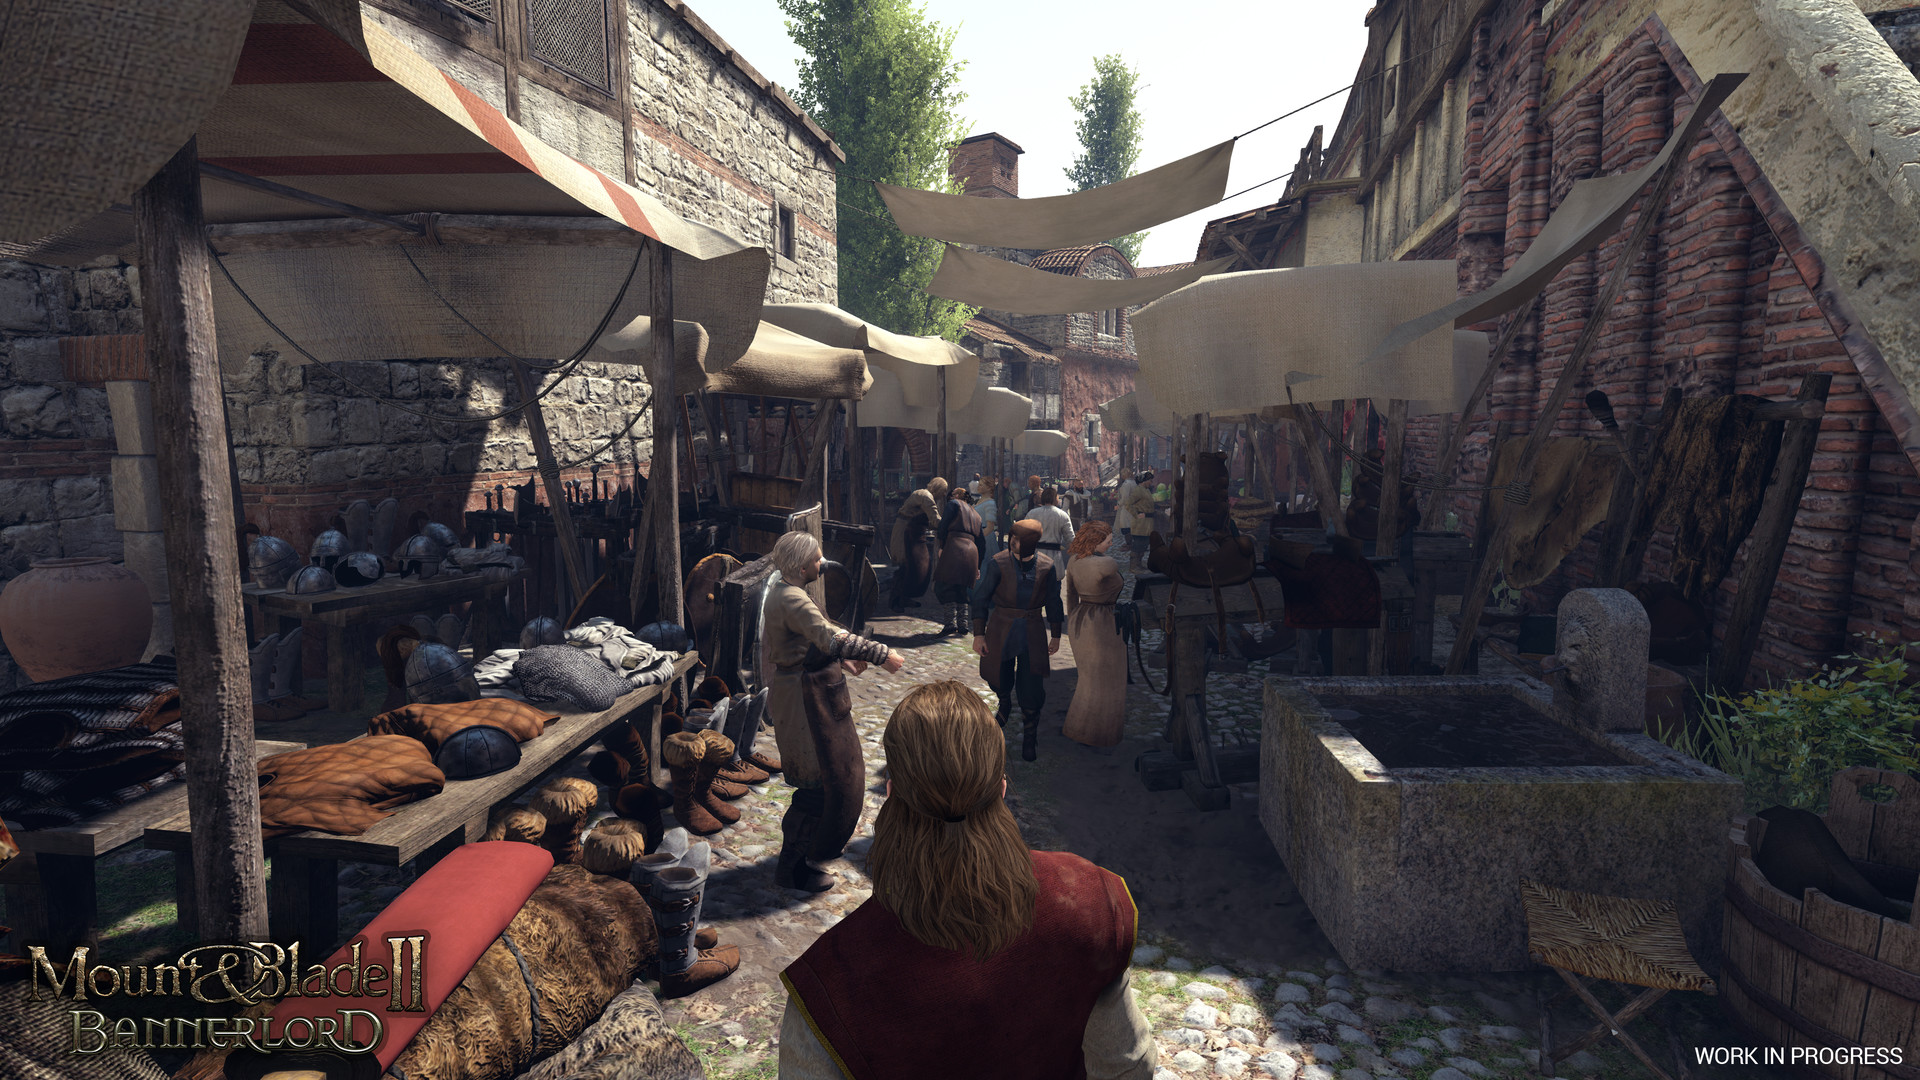 Mount Blade Ii Bannerlord System Requirements Can I Run It